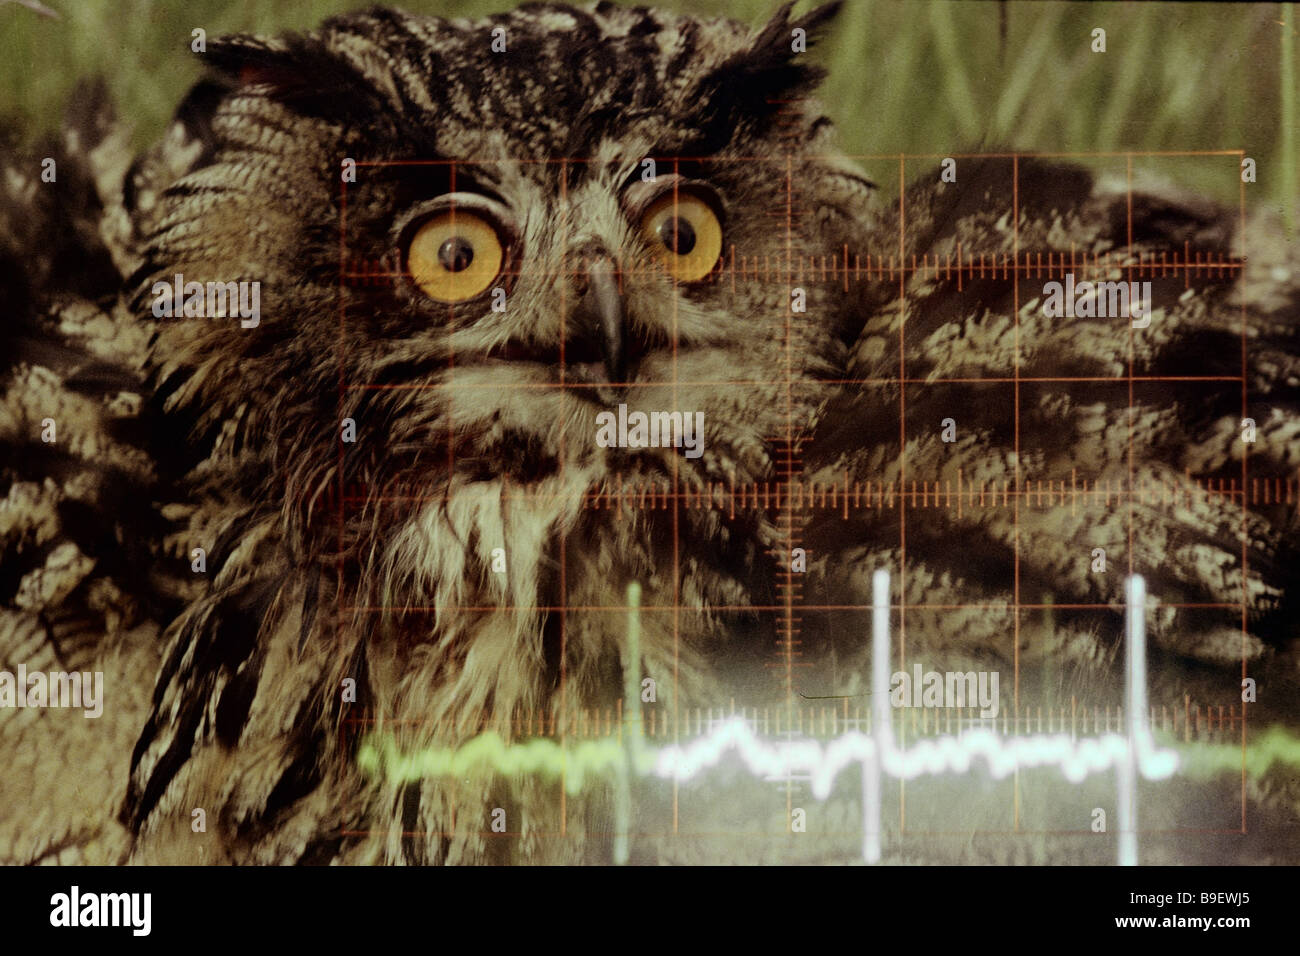 Owl monitored by the ornithology station of the Zoology and Botany Institute Estonian S S R Academy of Sciences - Stock Image